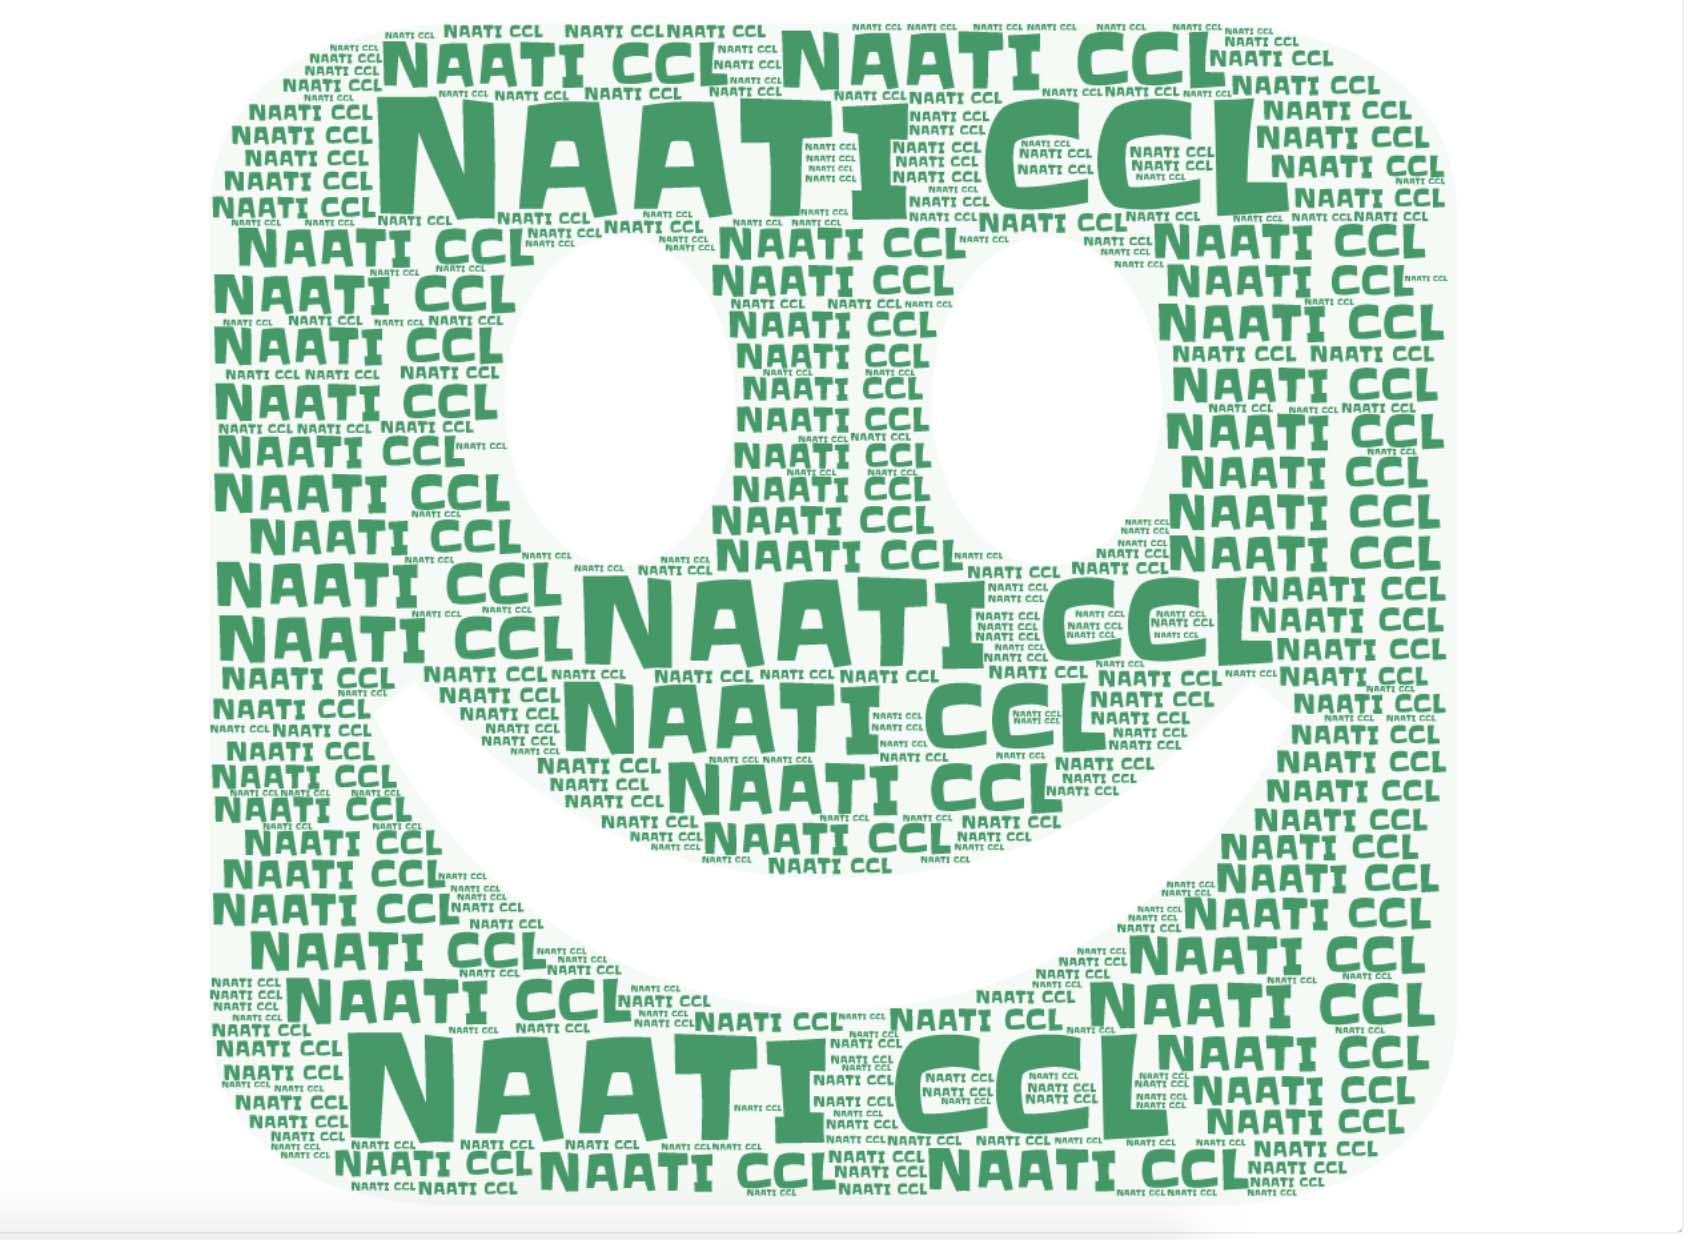 NAATI CCL, five bonus points toward Permanent Residency - NAATI-CCL